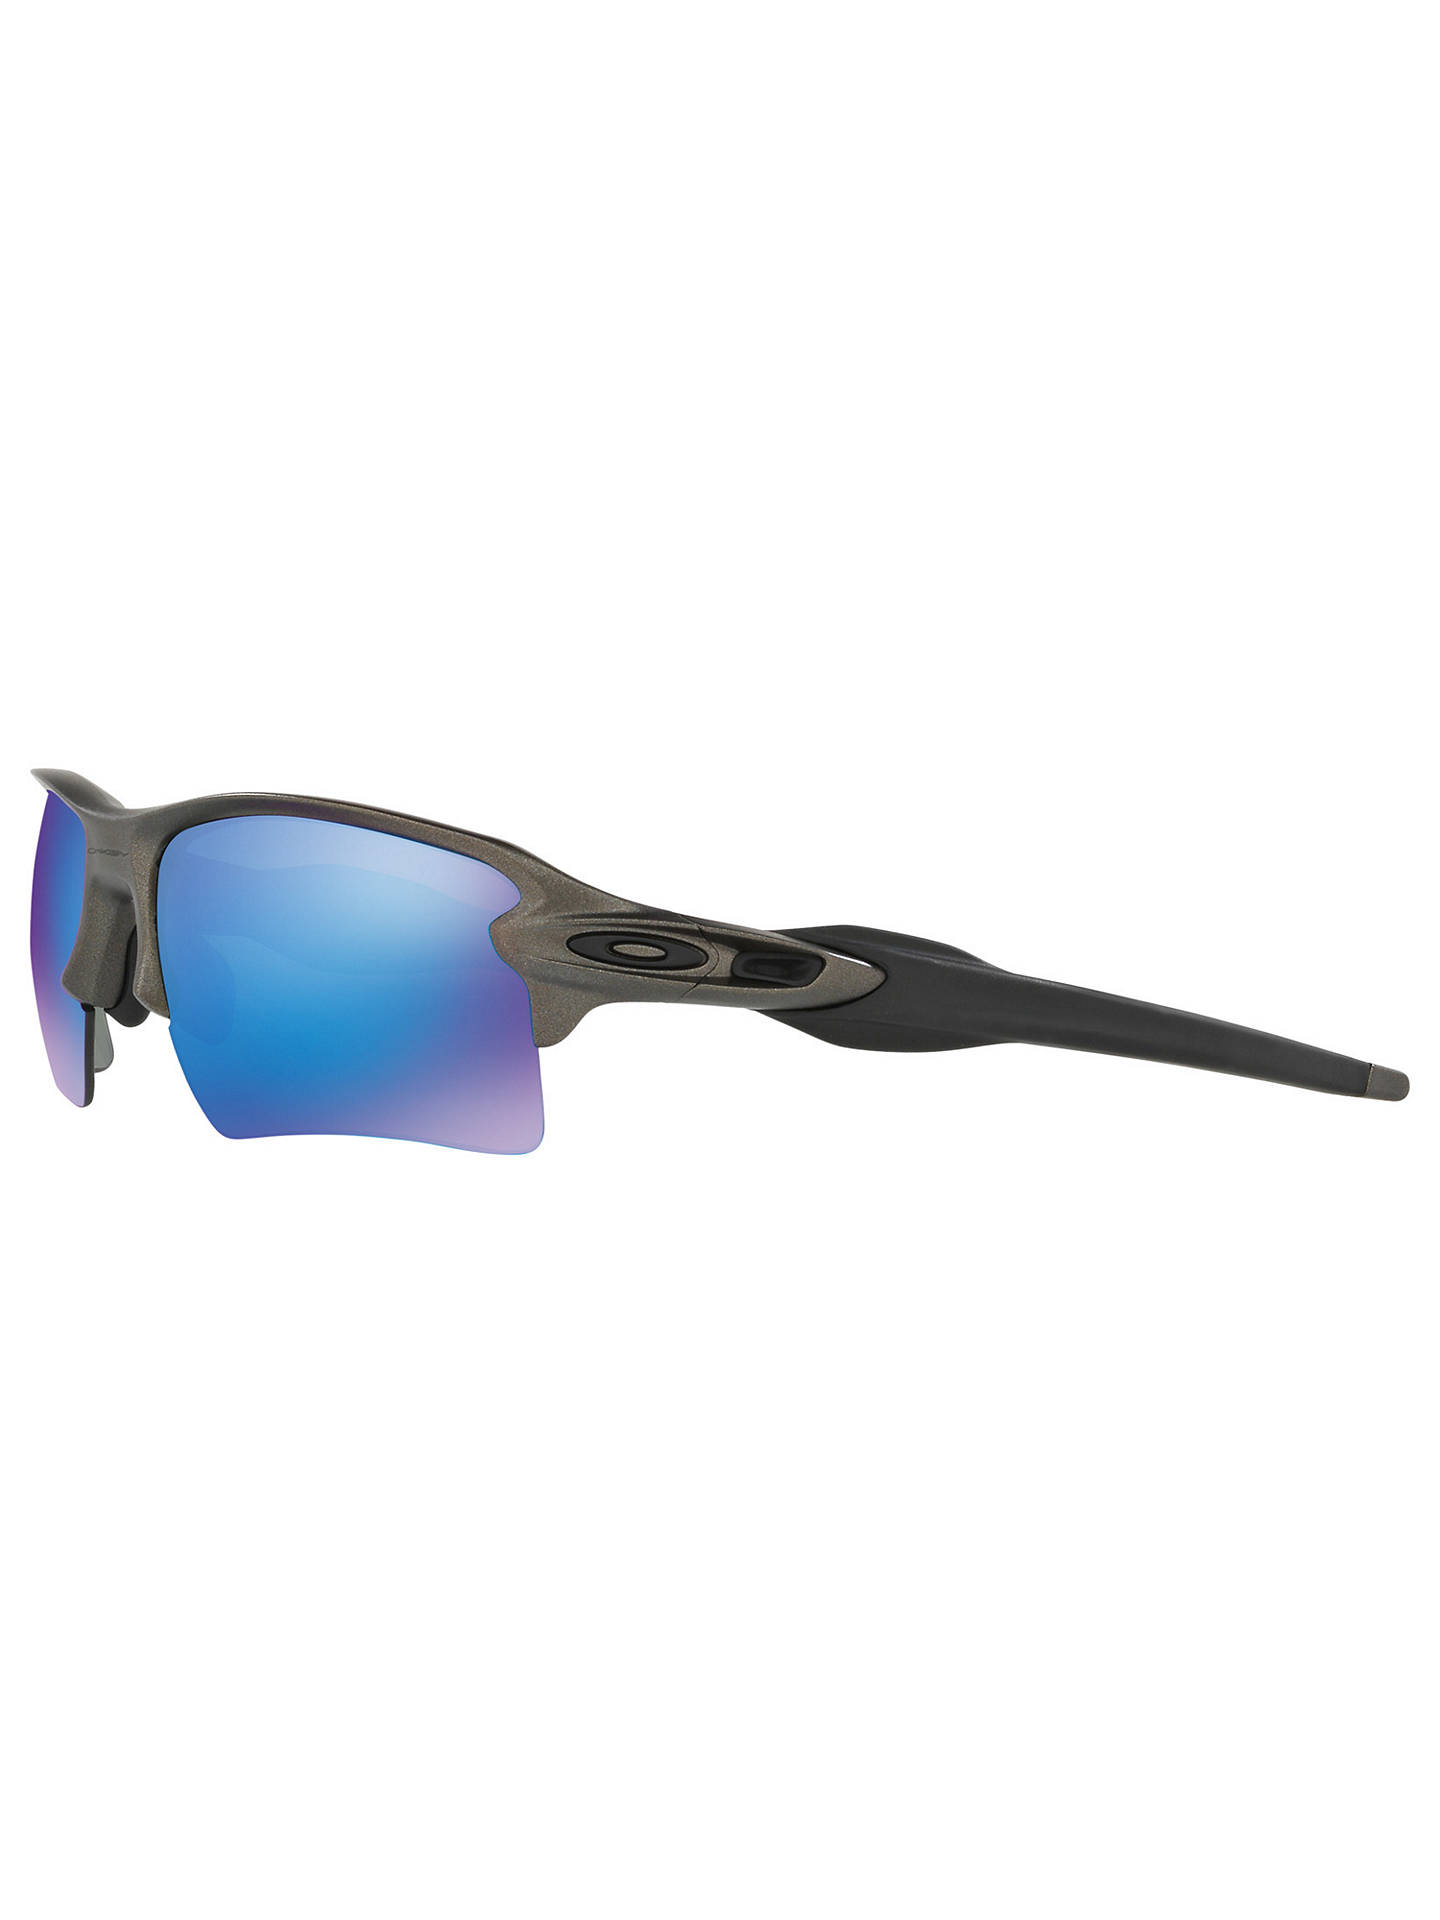 8ea8dc4d61 Oakley OO9188 FLAK 2.0 XL Mirrored Rectangular Sunglasses at John ...